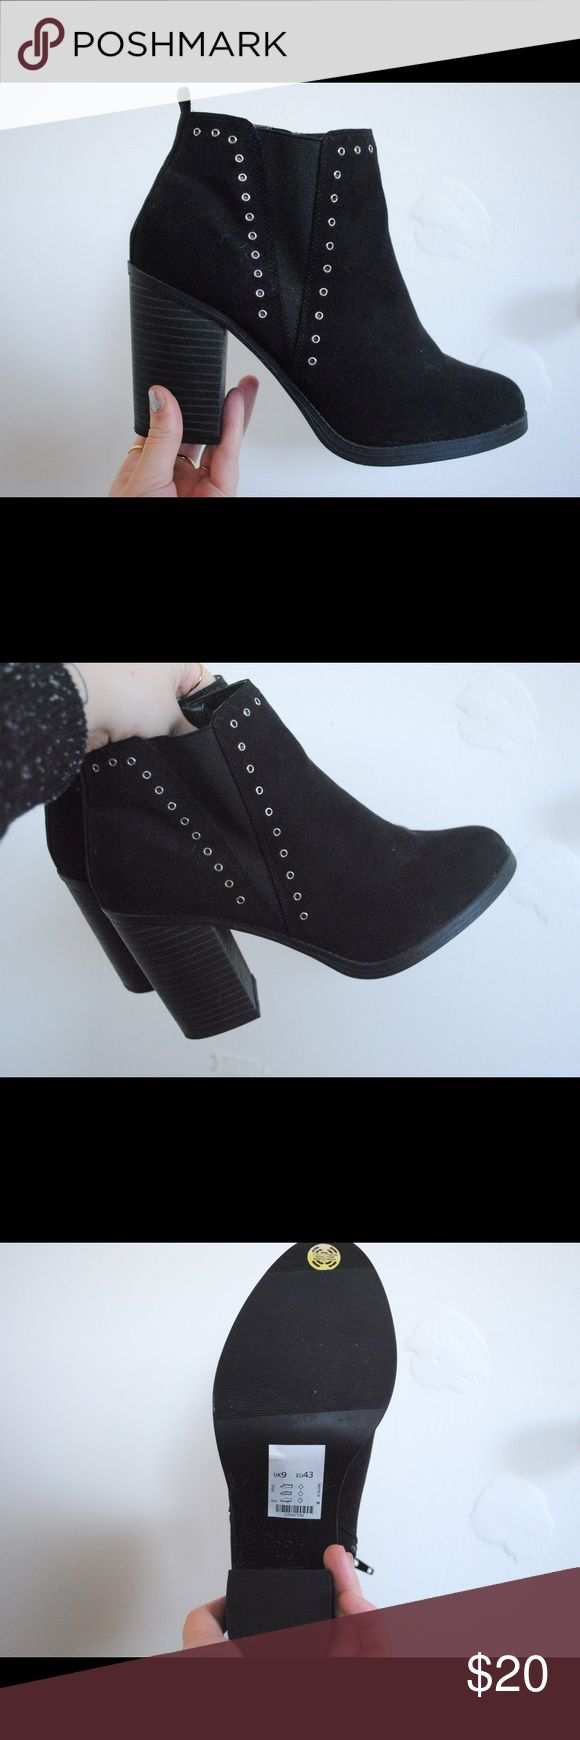 Black Heeled Booties Black heeled booties from the brand New Look. Heels are about four inches. Zipper on the inside. Never been worn! New Look Shoes Ankle Boots & Booties